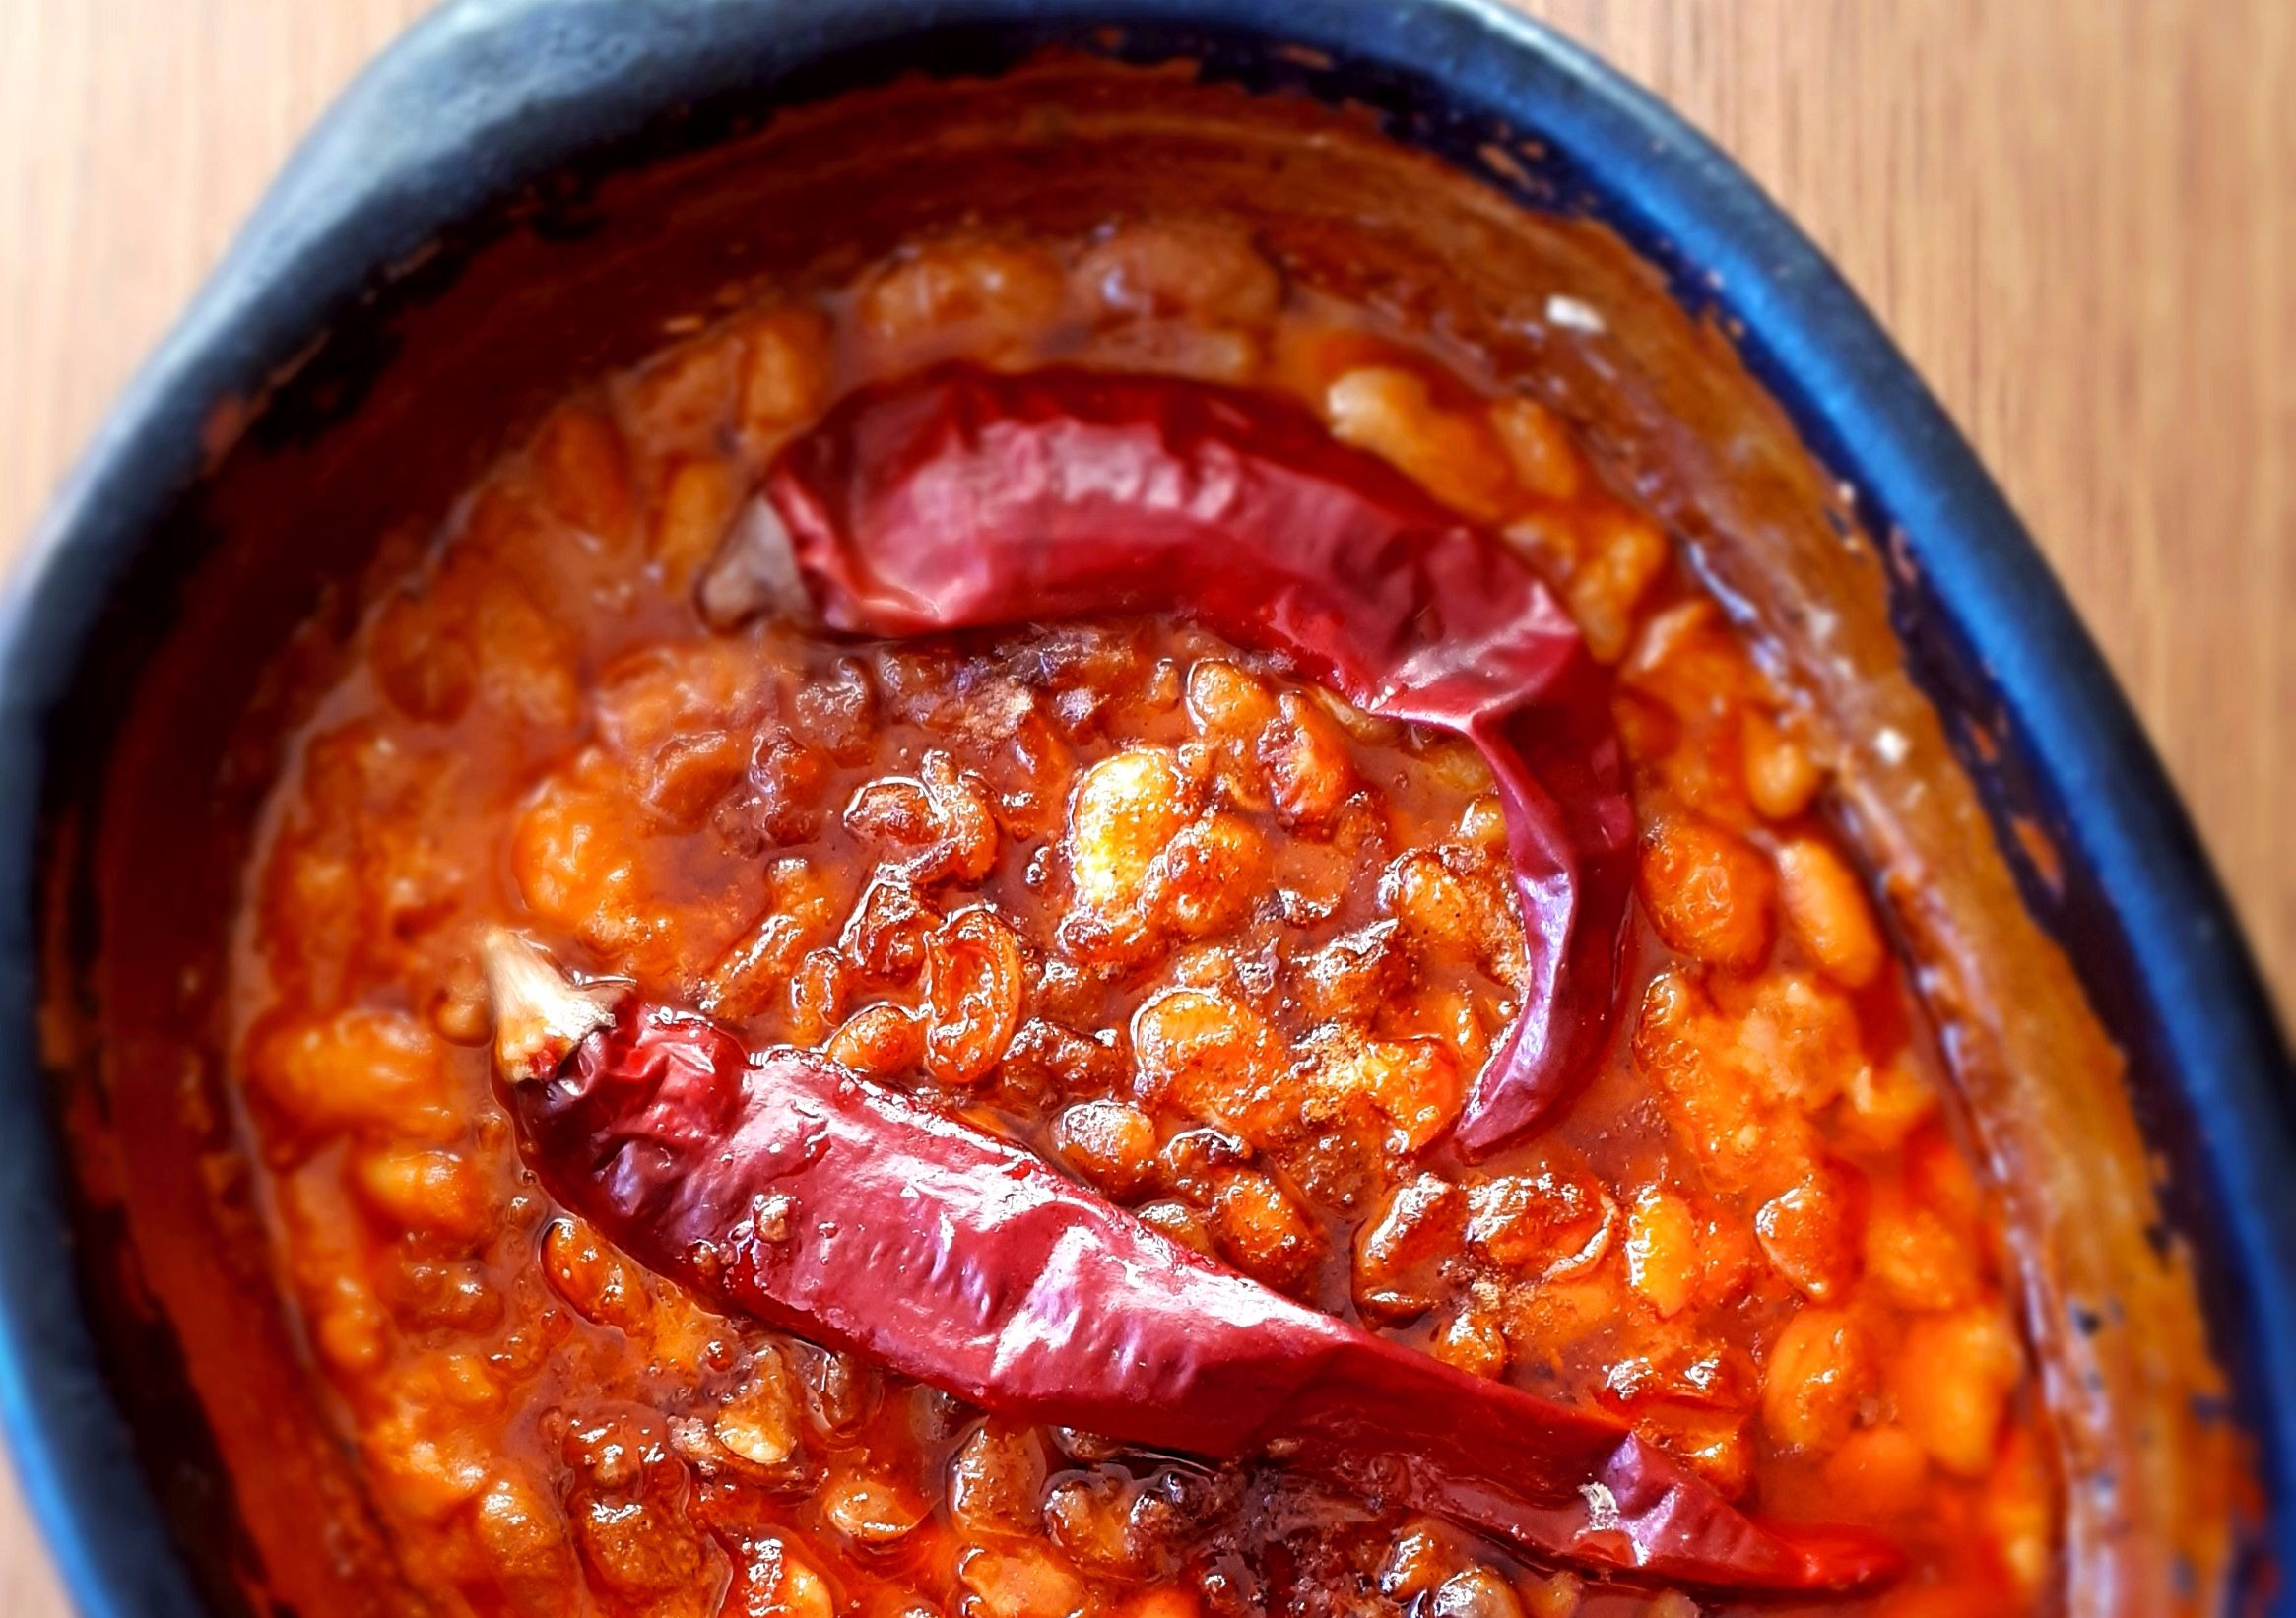 Macedonian Refried Beans or Creole Cassoulet? You decide.